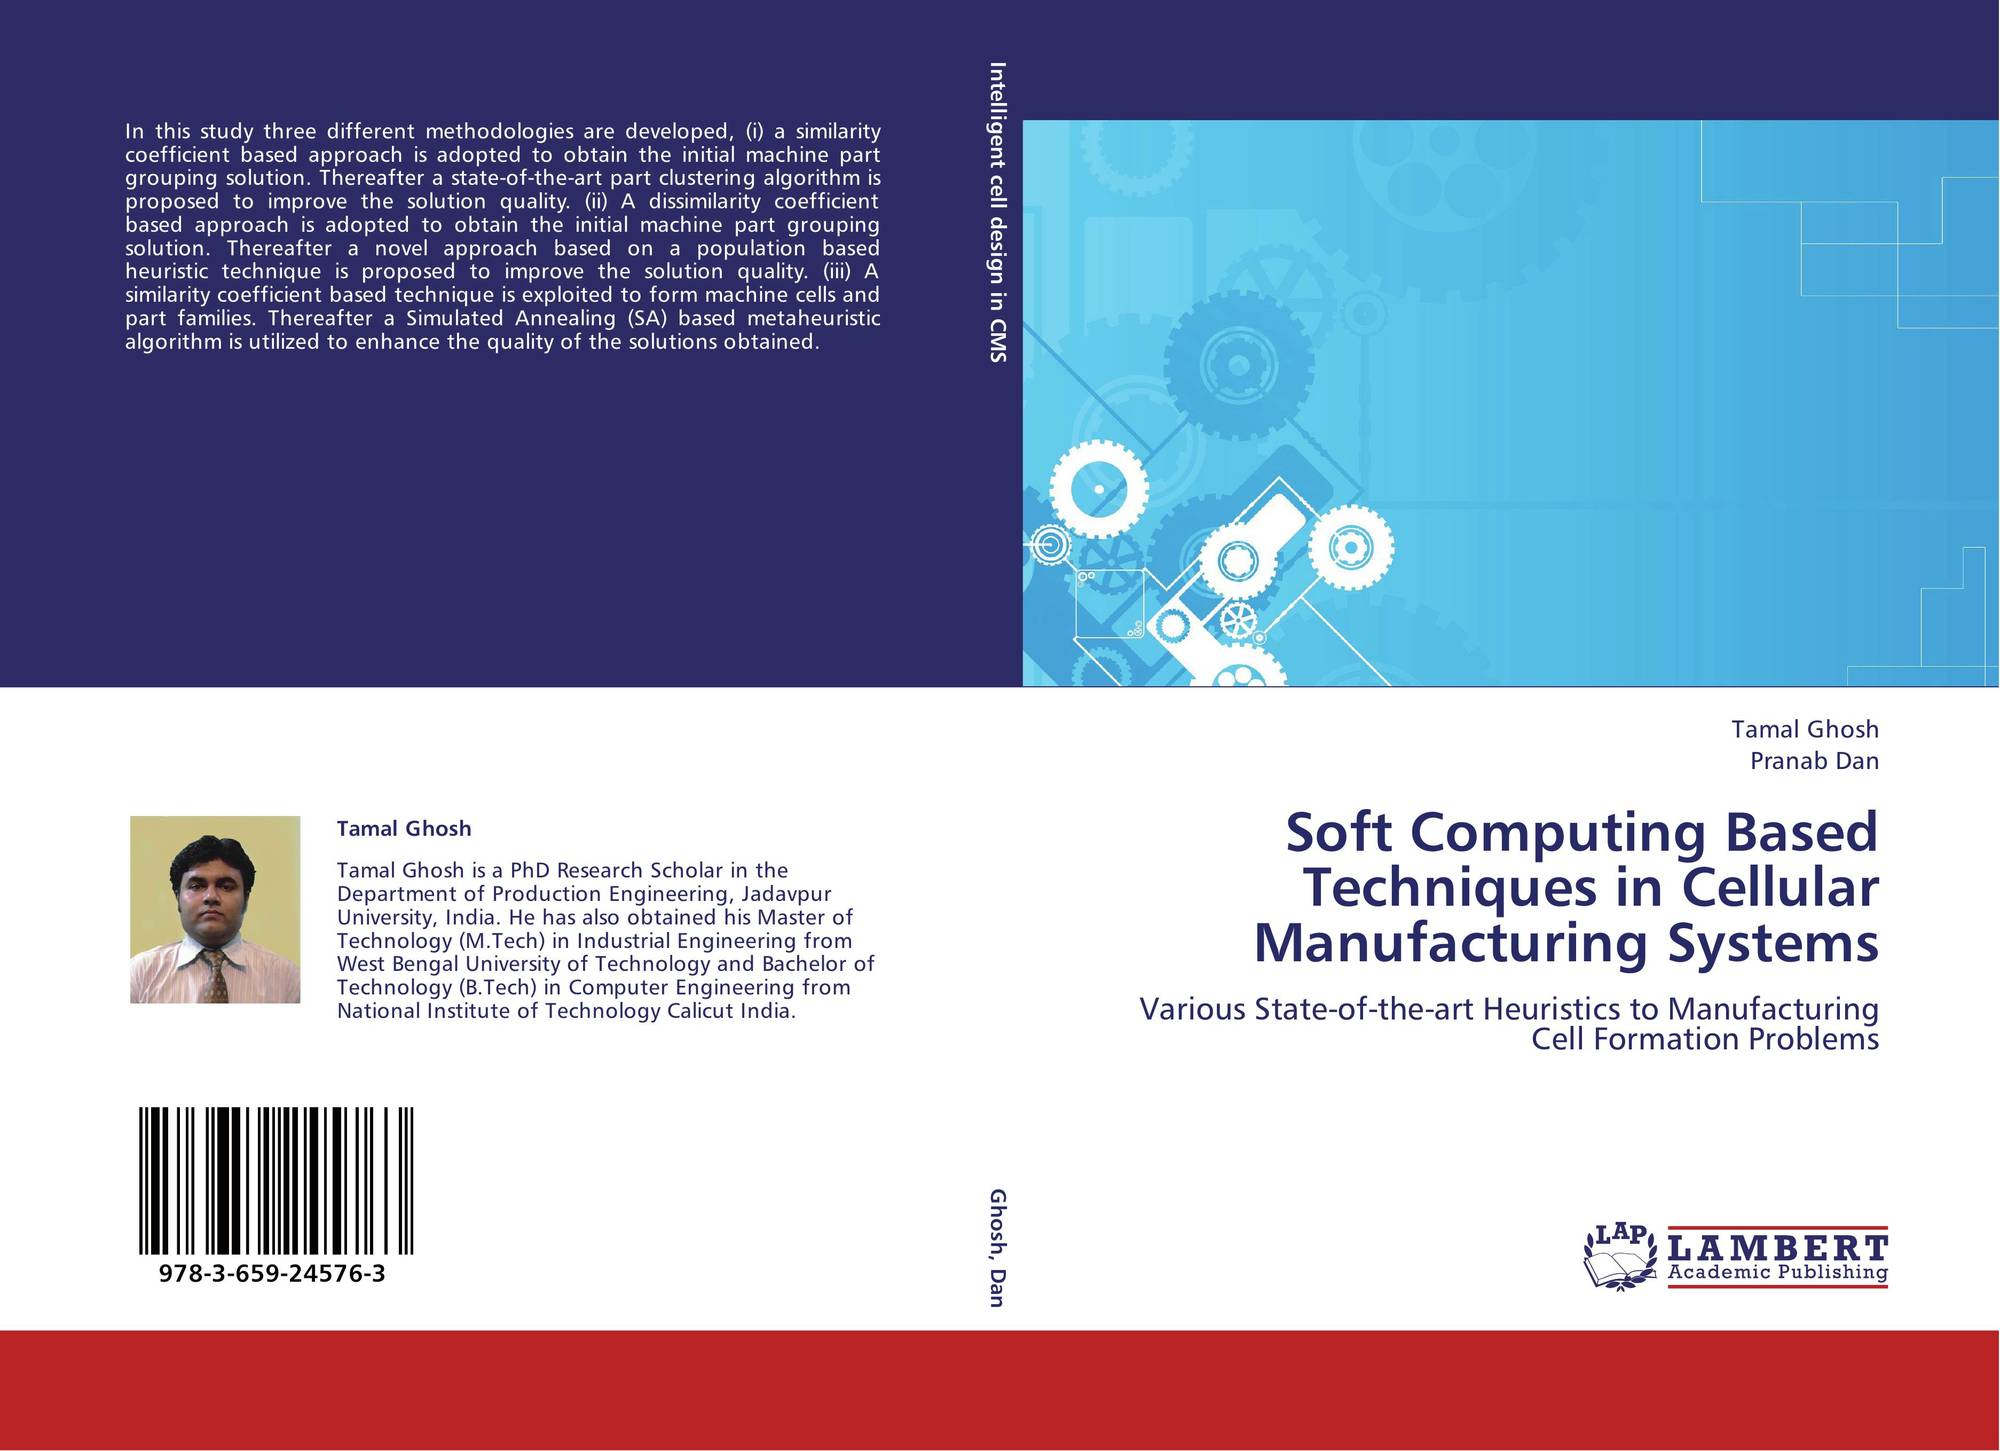 Soft Computing Based Techniques In Cellular Manufacturing Systems 978 3 659 24576 3 3659245763 9783659245763 By Tamal Ghosh Pranab Dan